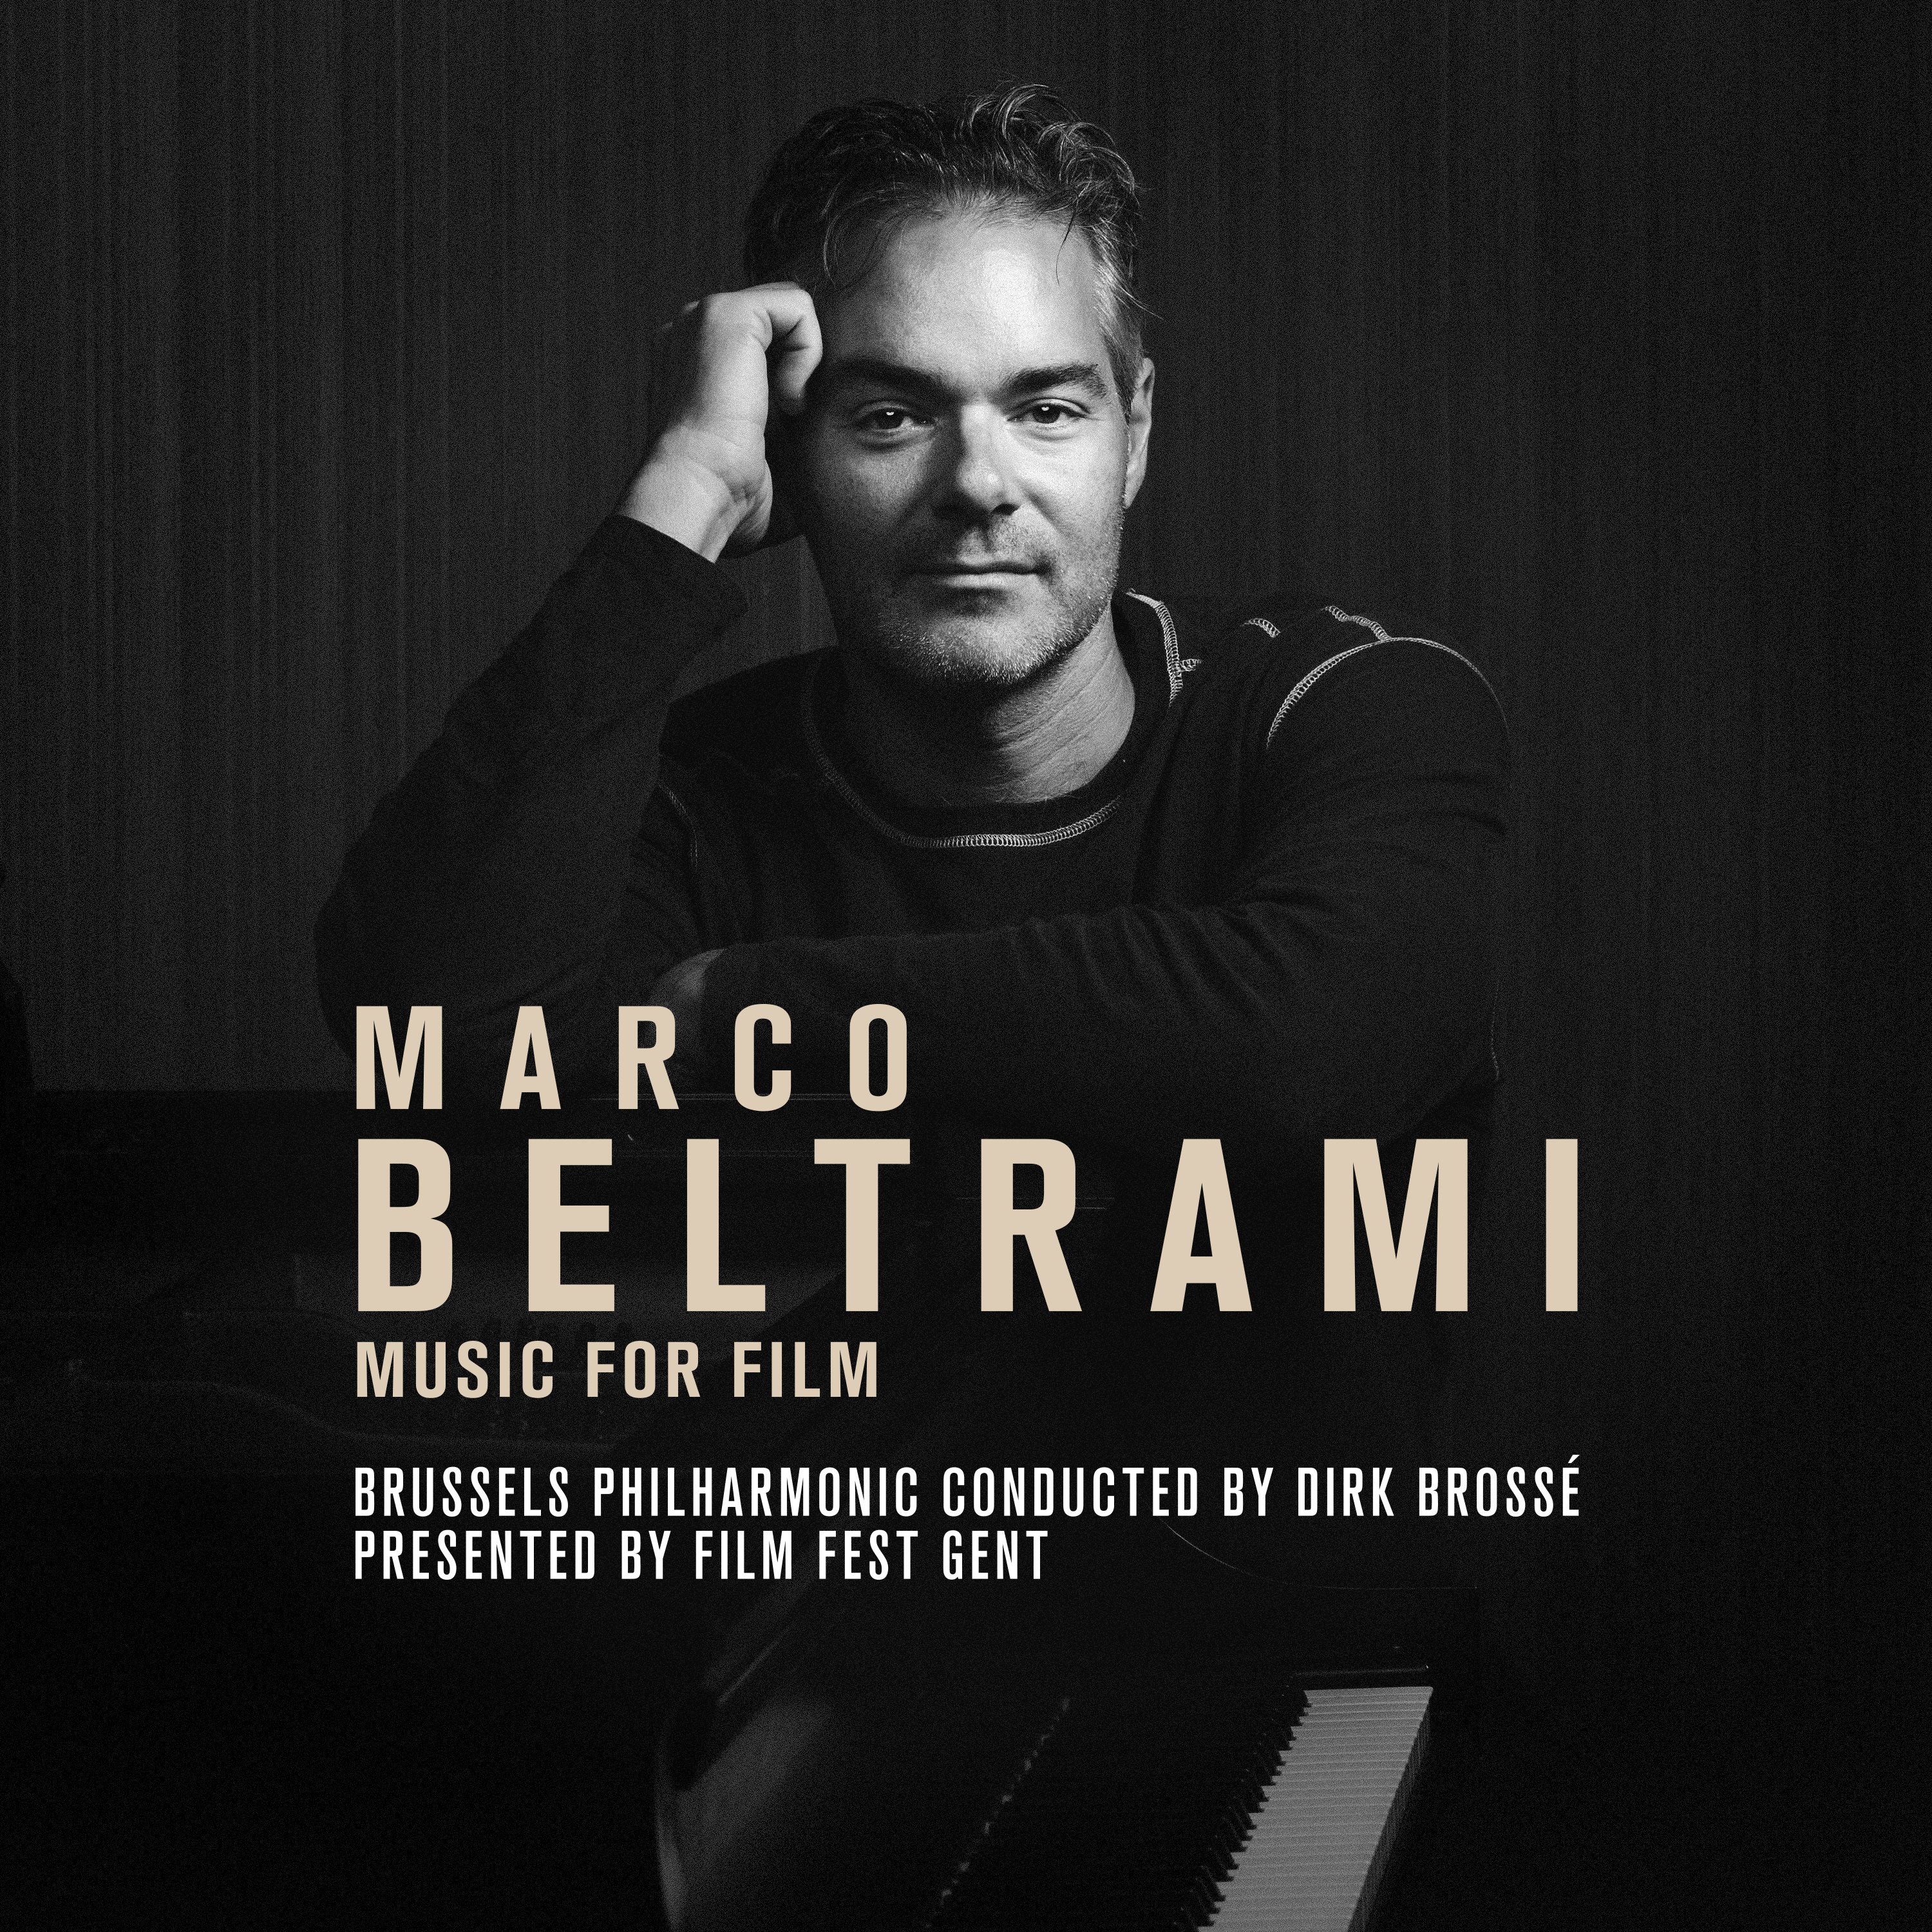 Marco Beltrami Music for Film